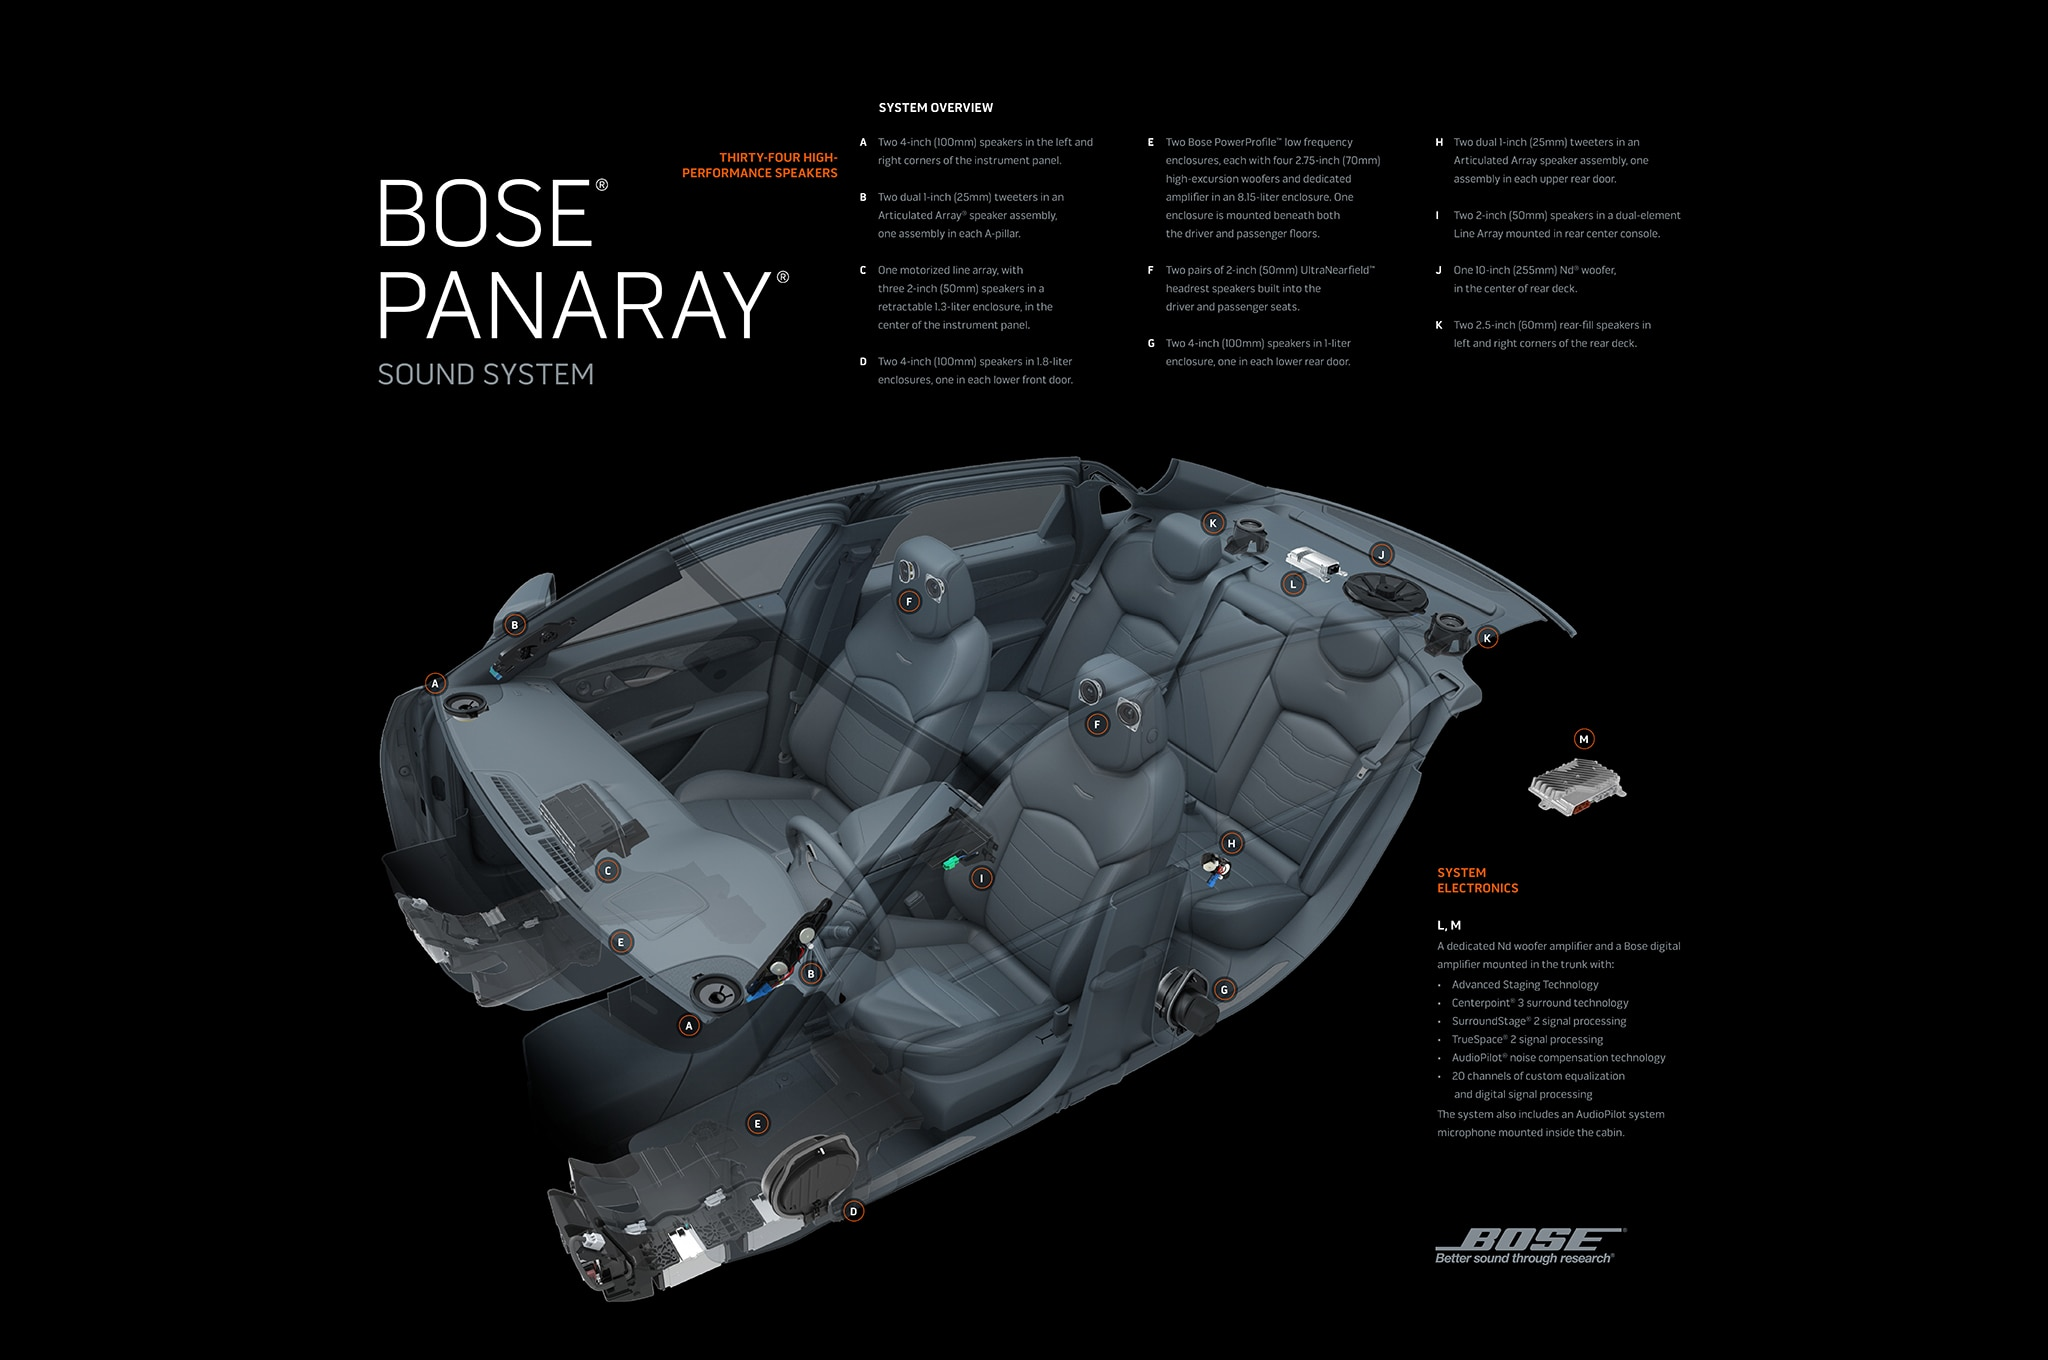 2016 Cadillac Ct6 Bose Panaray Sound System